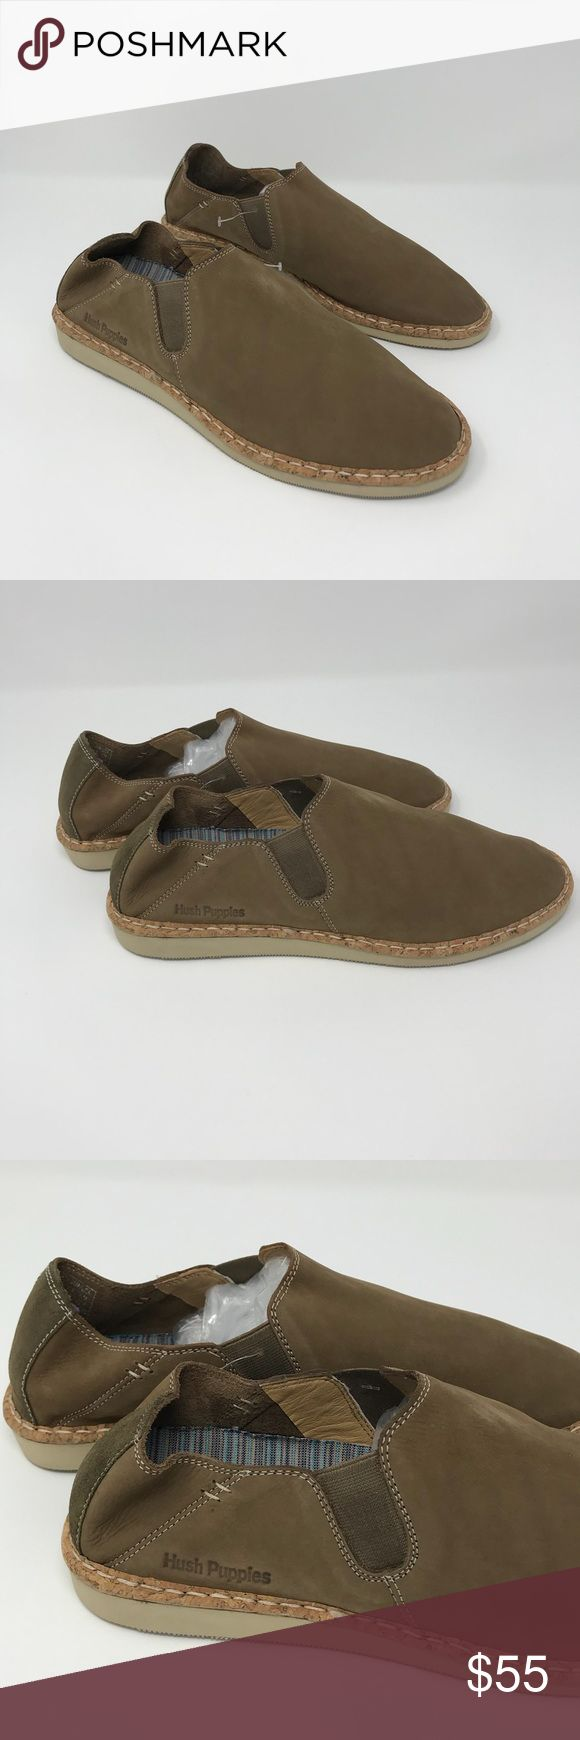 NEW Hush Puppies Maple Nubuck Slip Ons Size 9 These are brand NEW without box/tag Hush Puppies slip on shoes size 9 in maple nubuck. These slip ons are very light and comfortable to wear.  ▪️NEW condition  ▪️size 9  ▪️maple color  ▪️leather/nubuck upper ▪️slip on style Hush Puppies Shoes Loafers & Slip-Ons